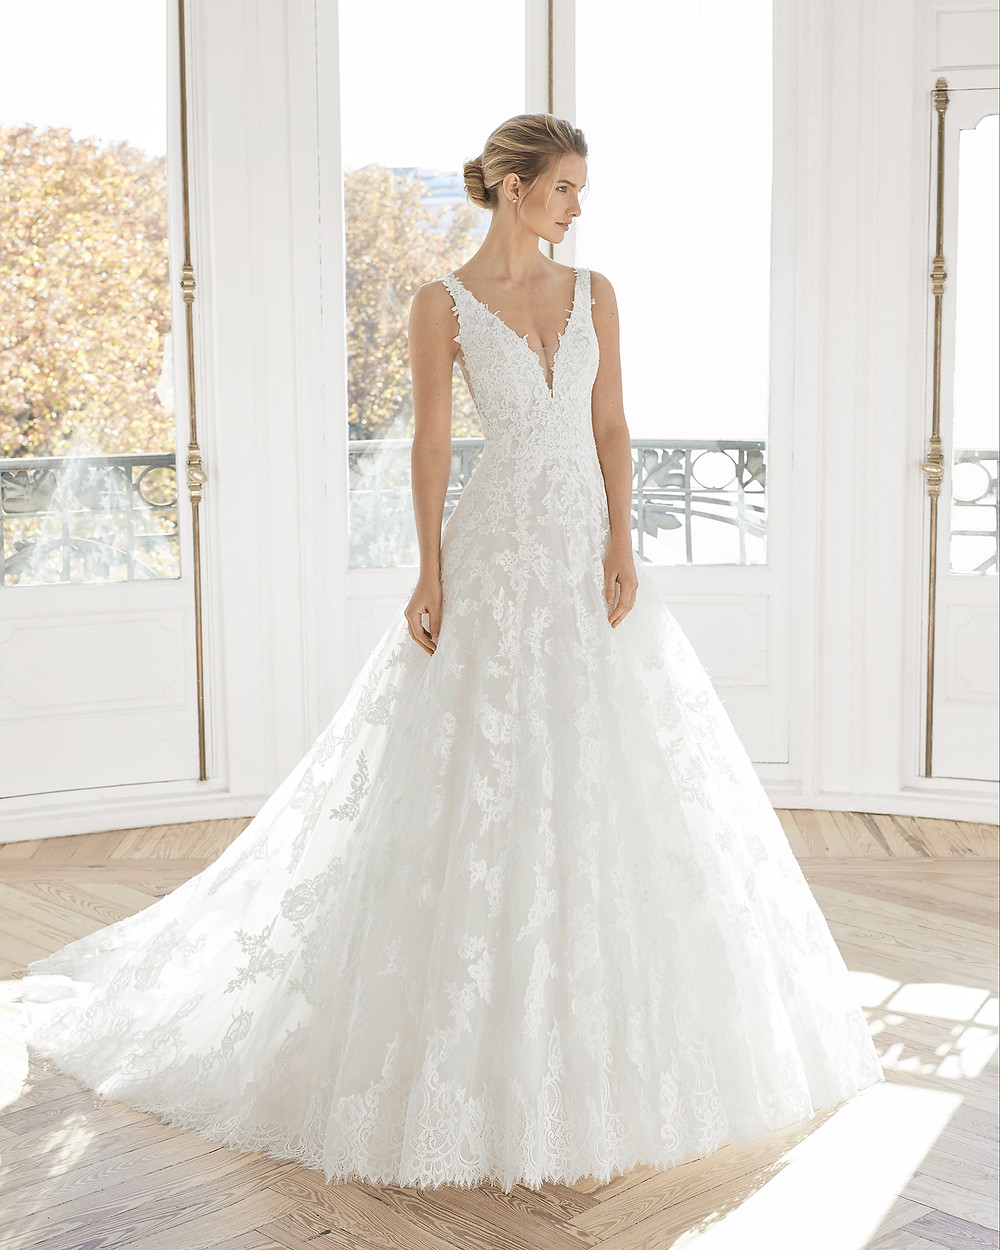 An Aire Barcelona 2020 romantic lace and tulle ball gown wedding dress with straps